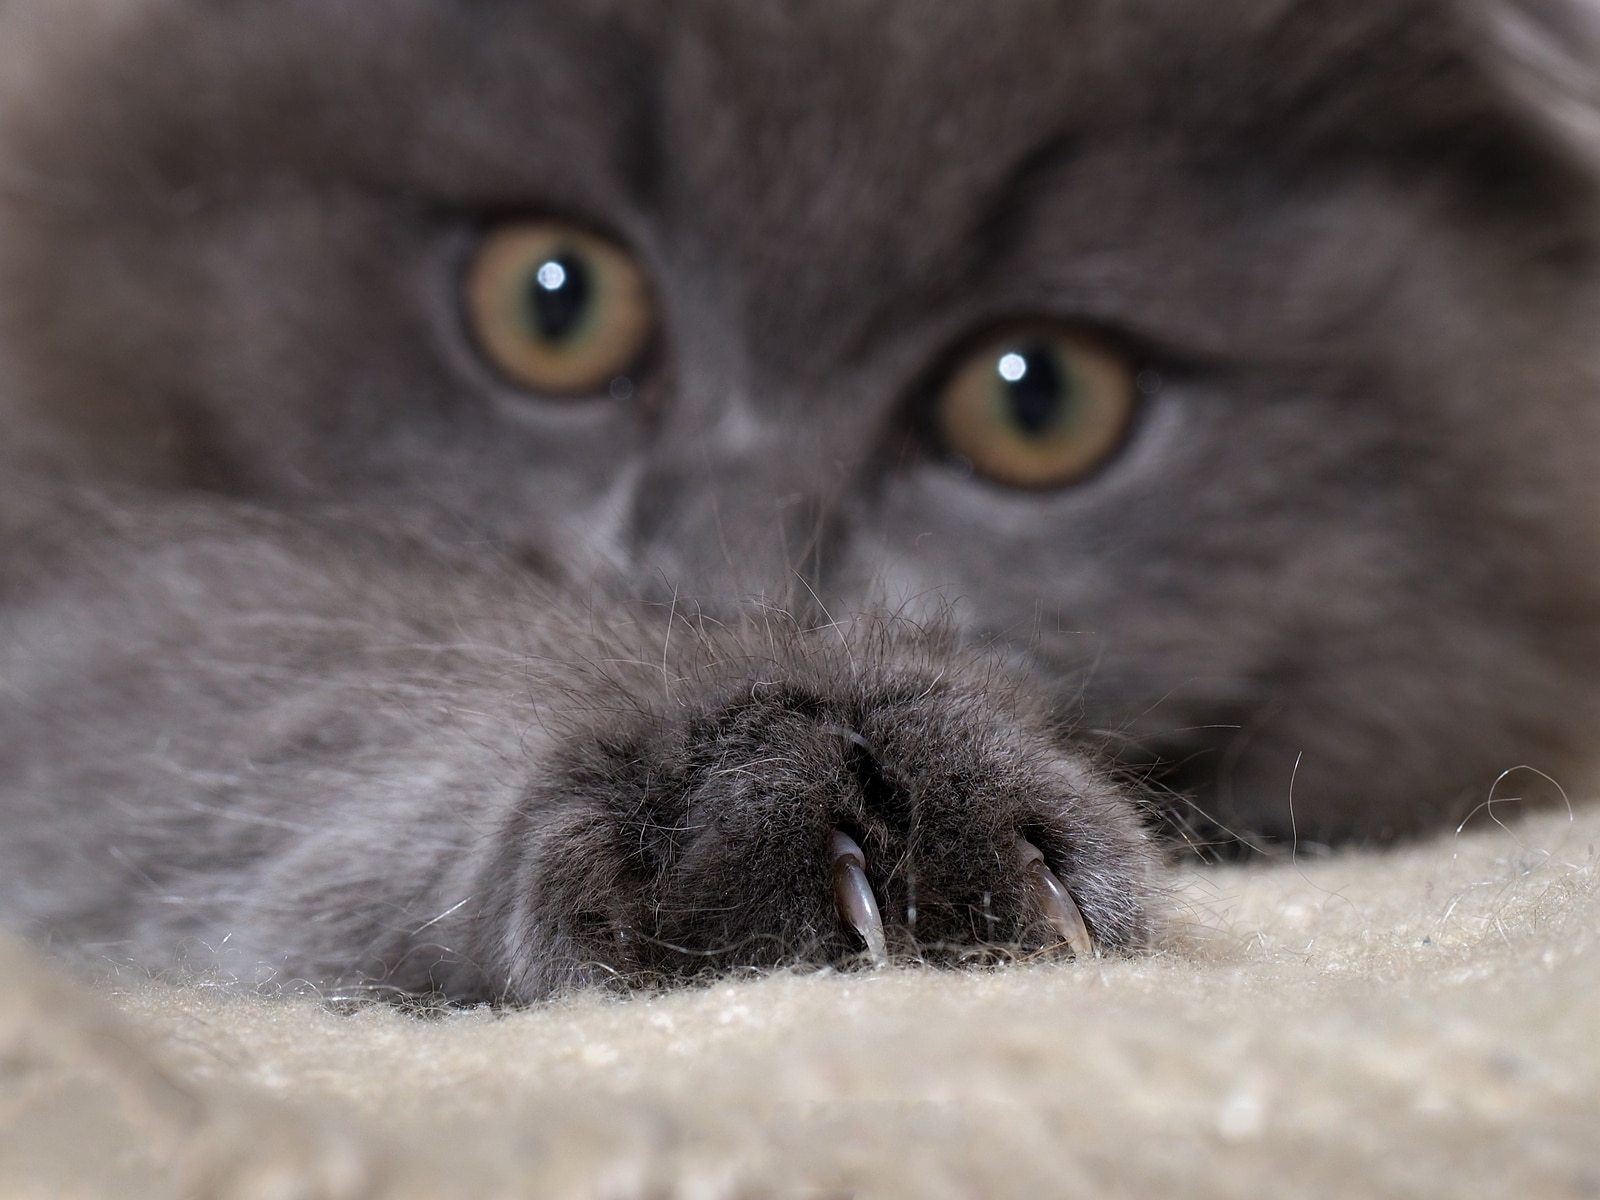 Fluffy dark gray cat lying down with claws extended into carpet. The fur is gray fluffy